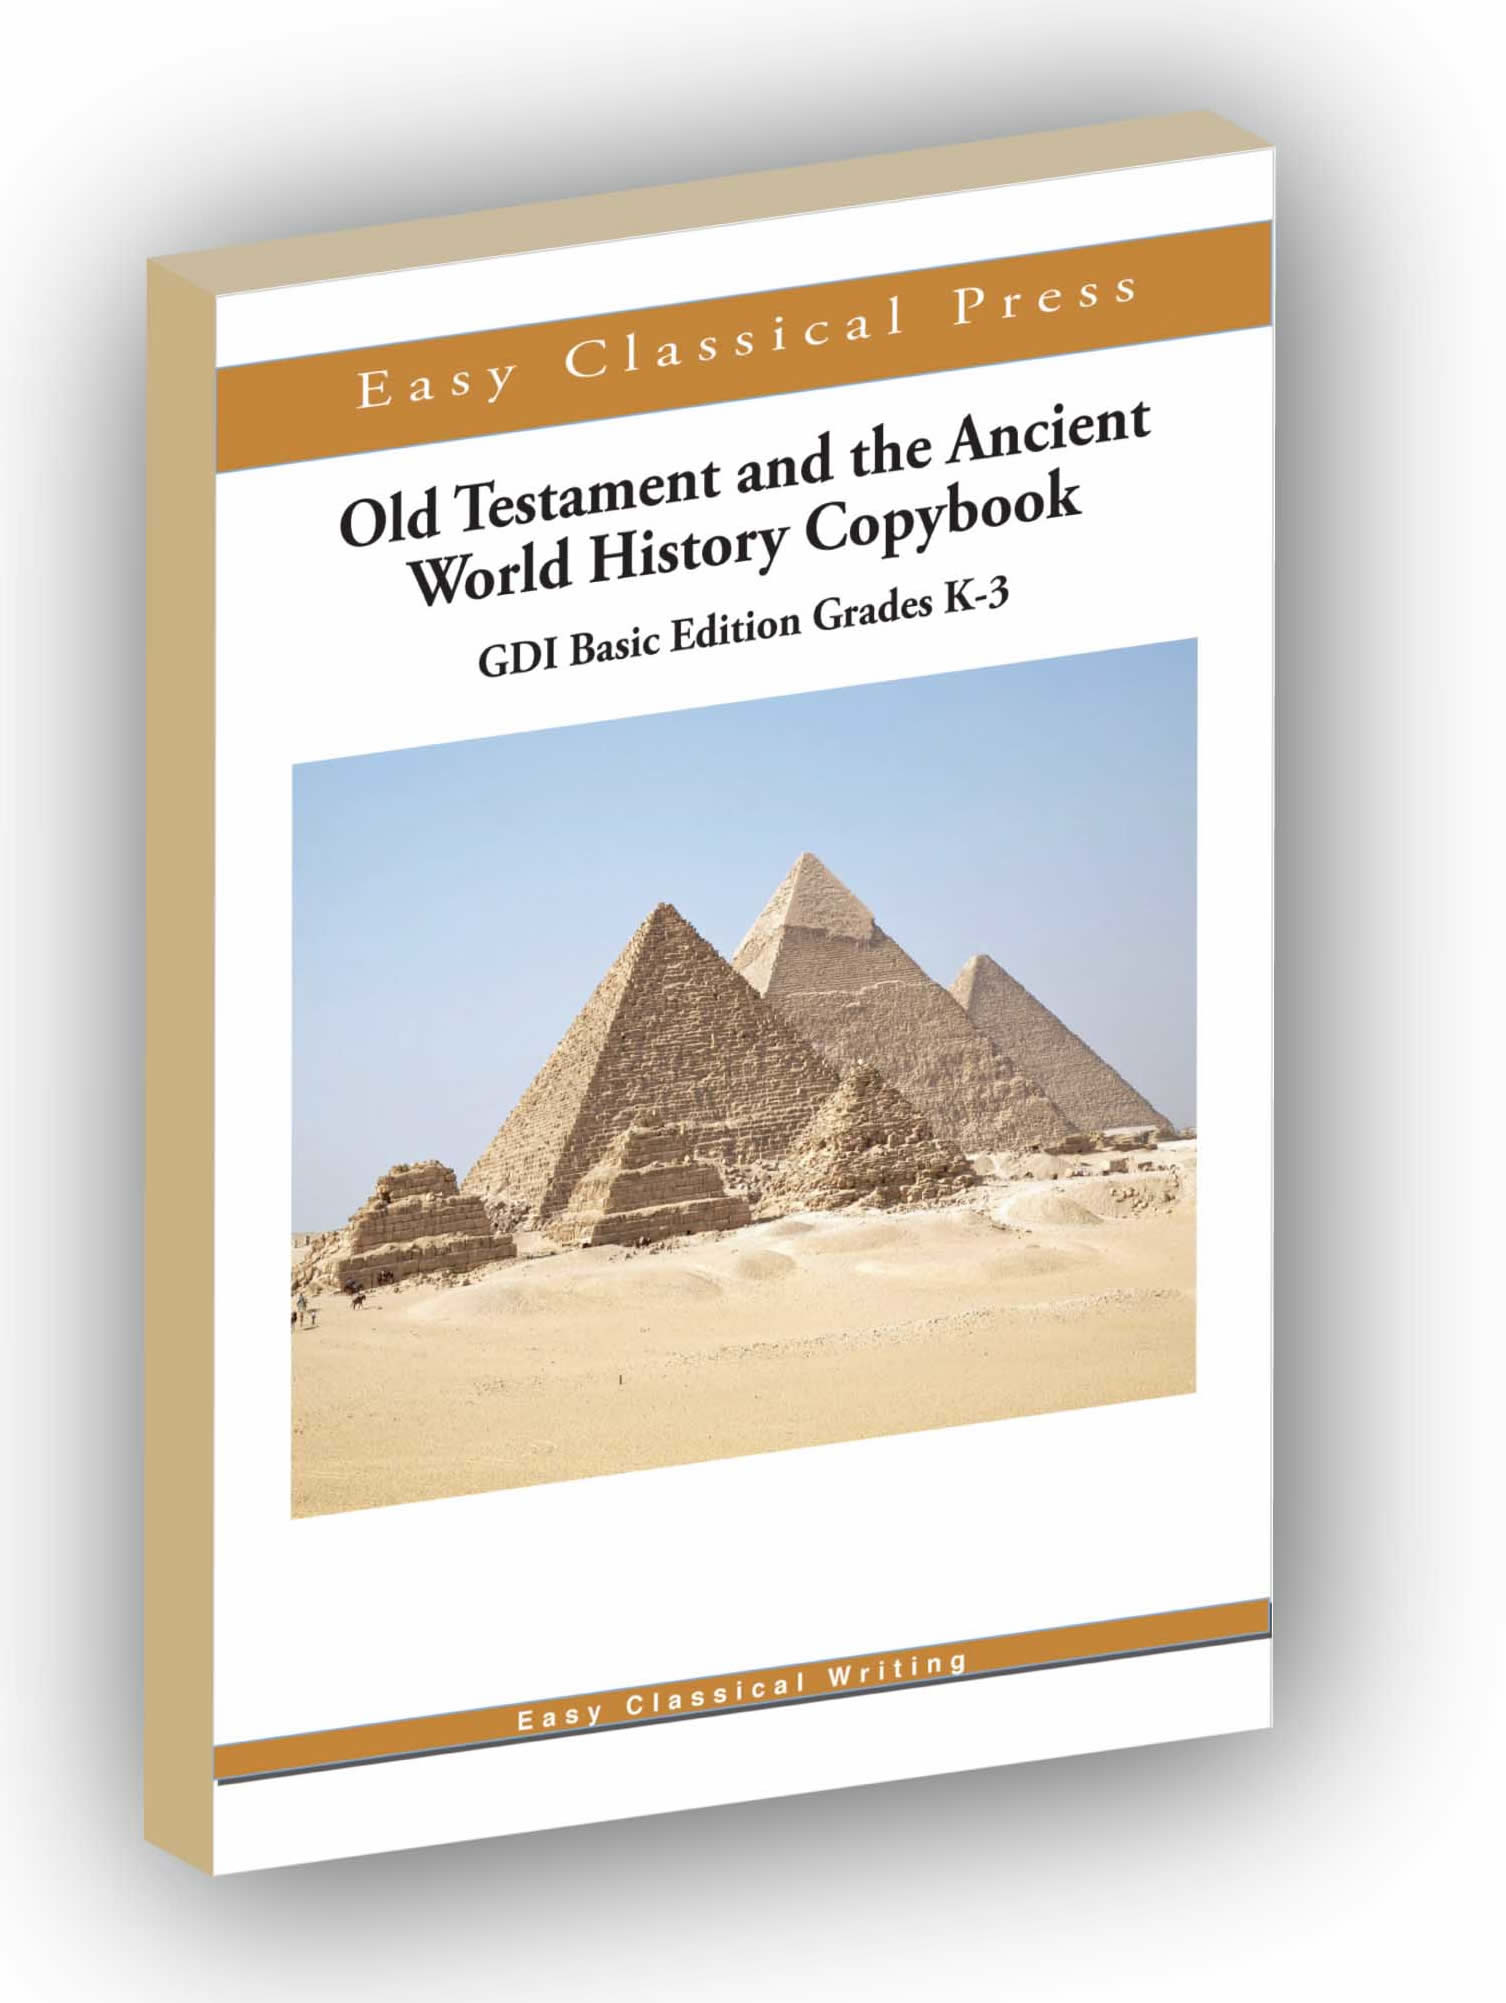 OT and the Ancient World History Copybook K-3